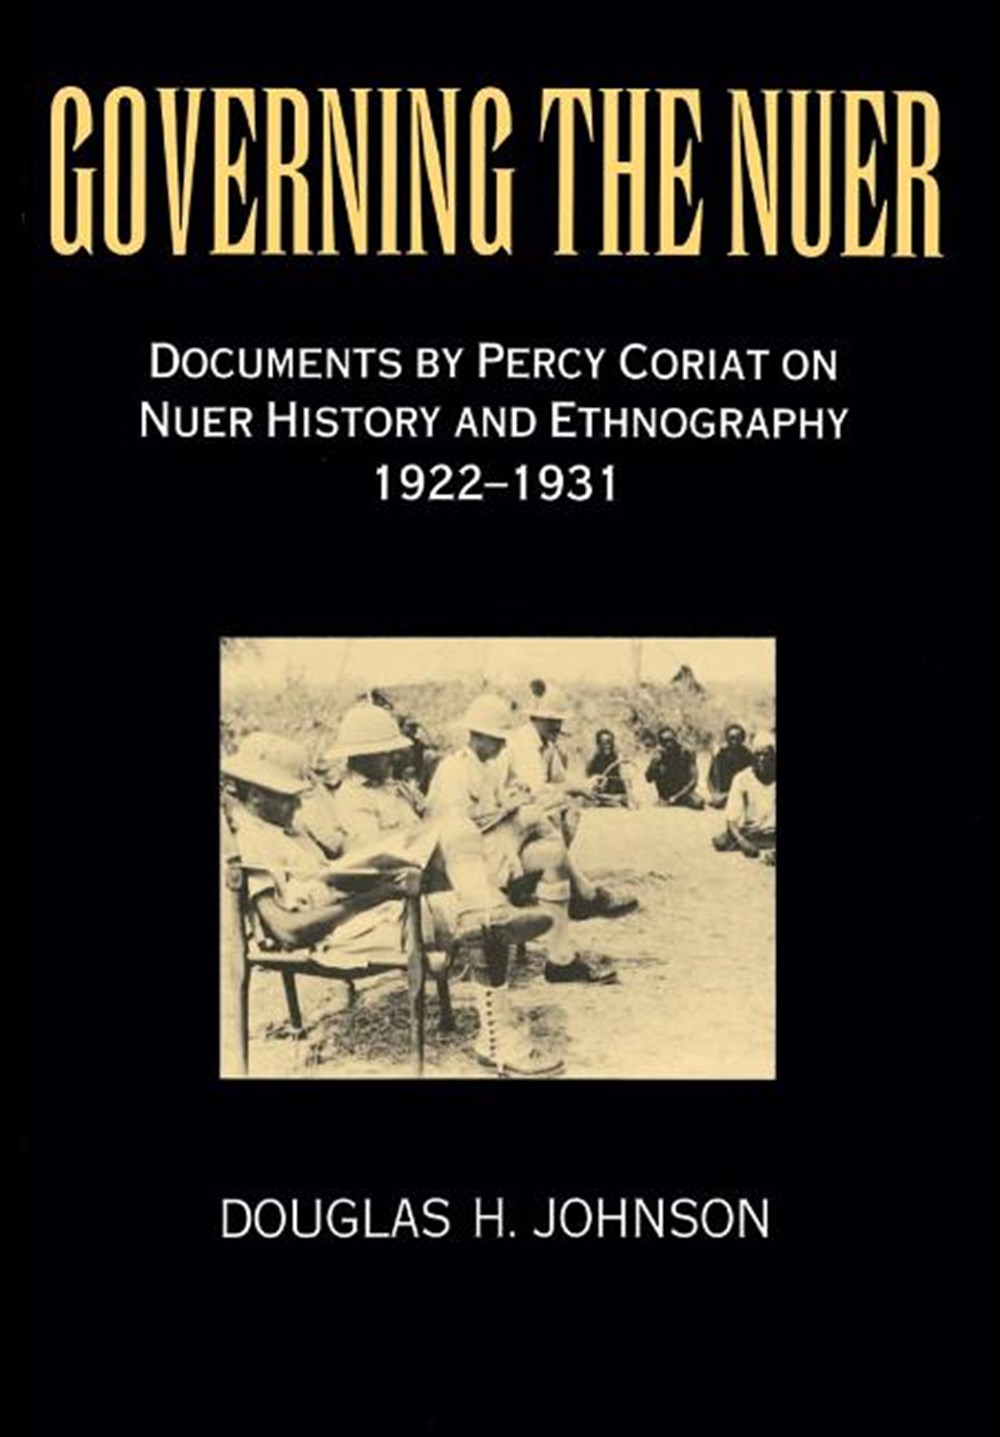 Governing the Nuer Documents by Percy Coriat on Nuer History and Ethnography 1922-1931